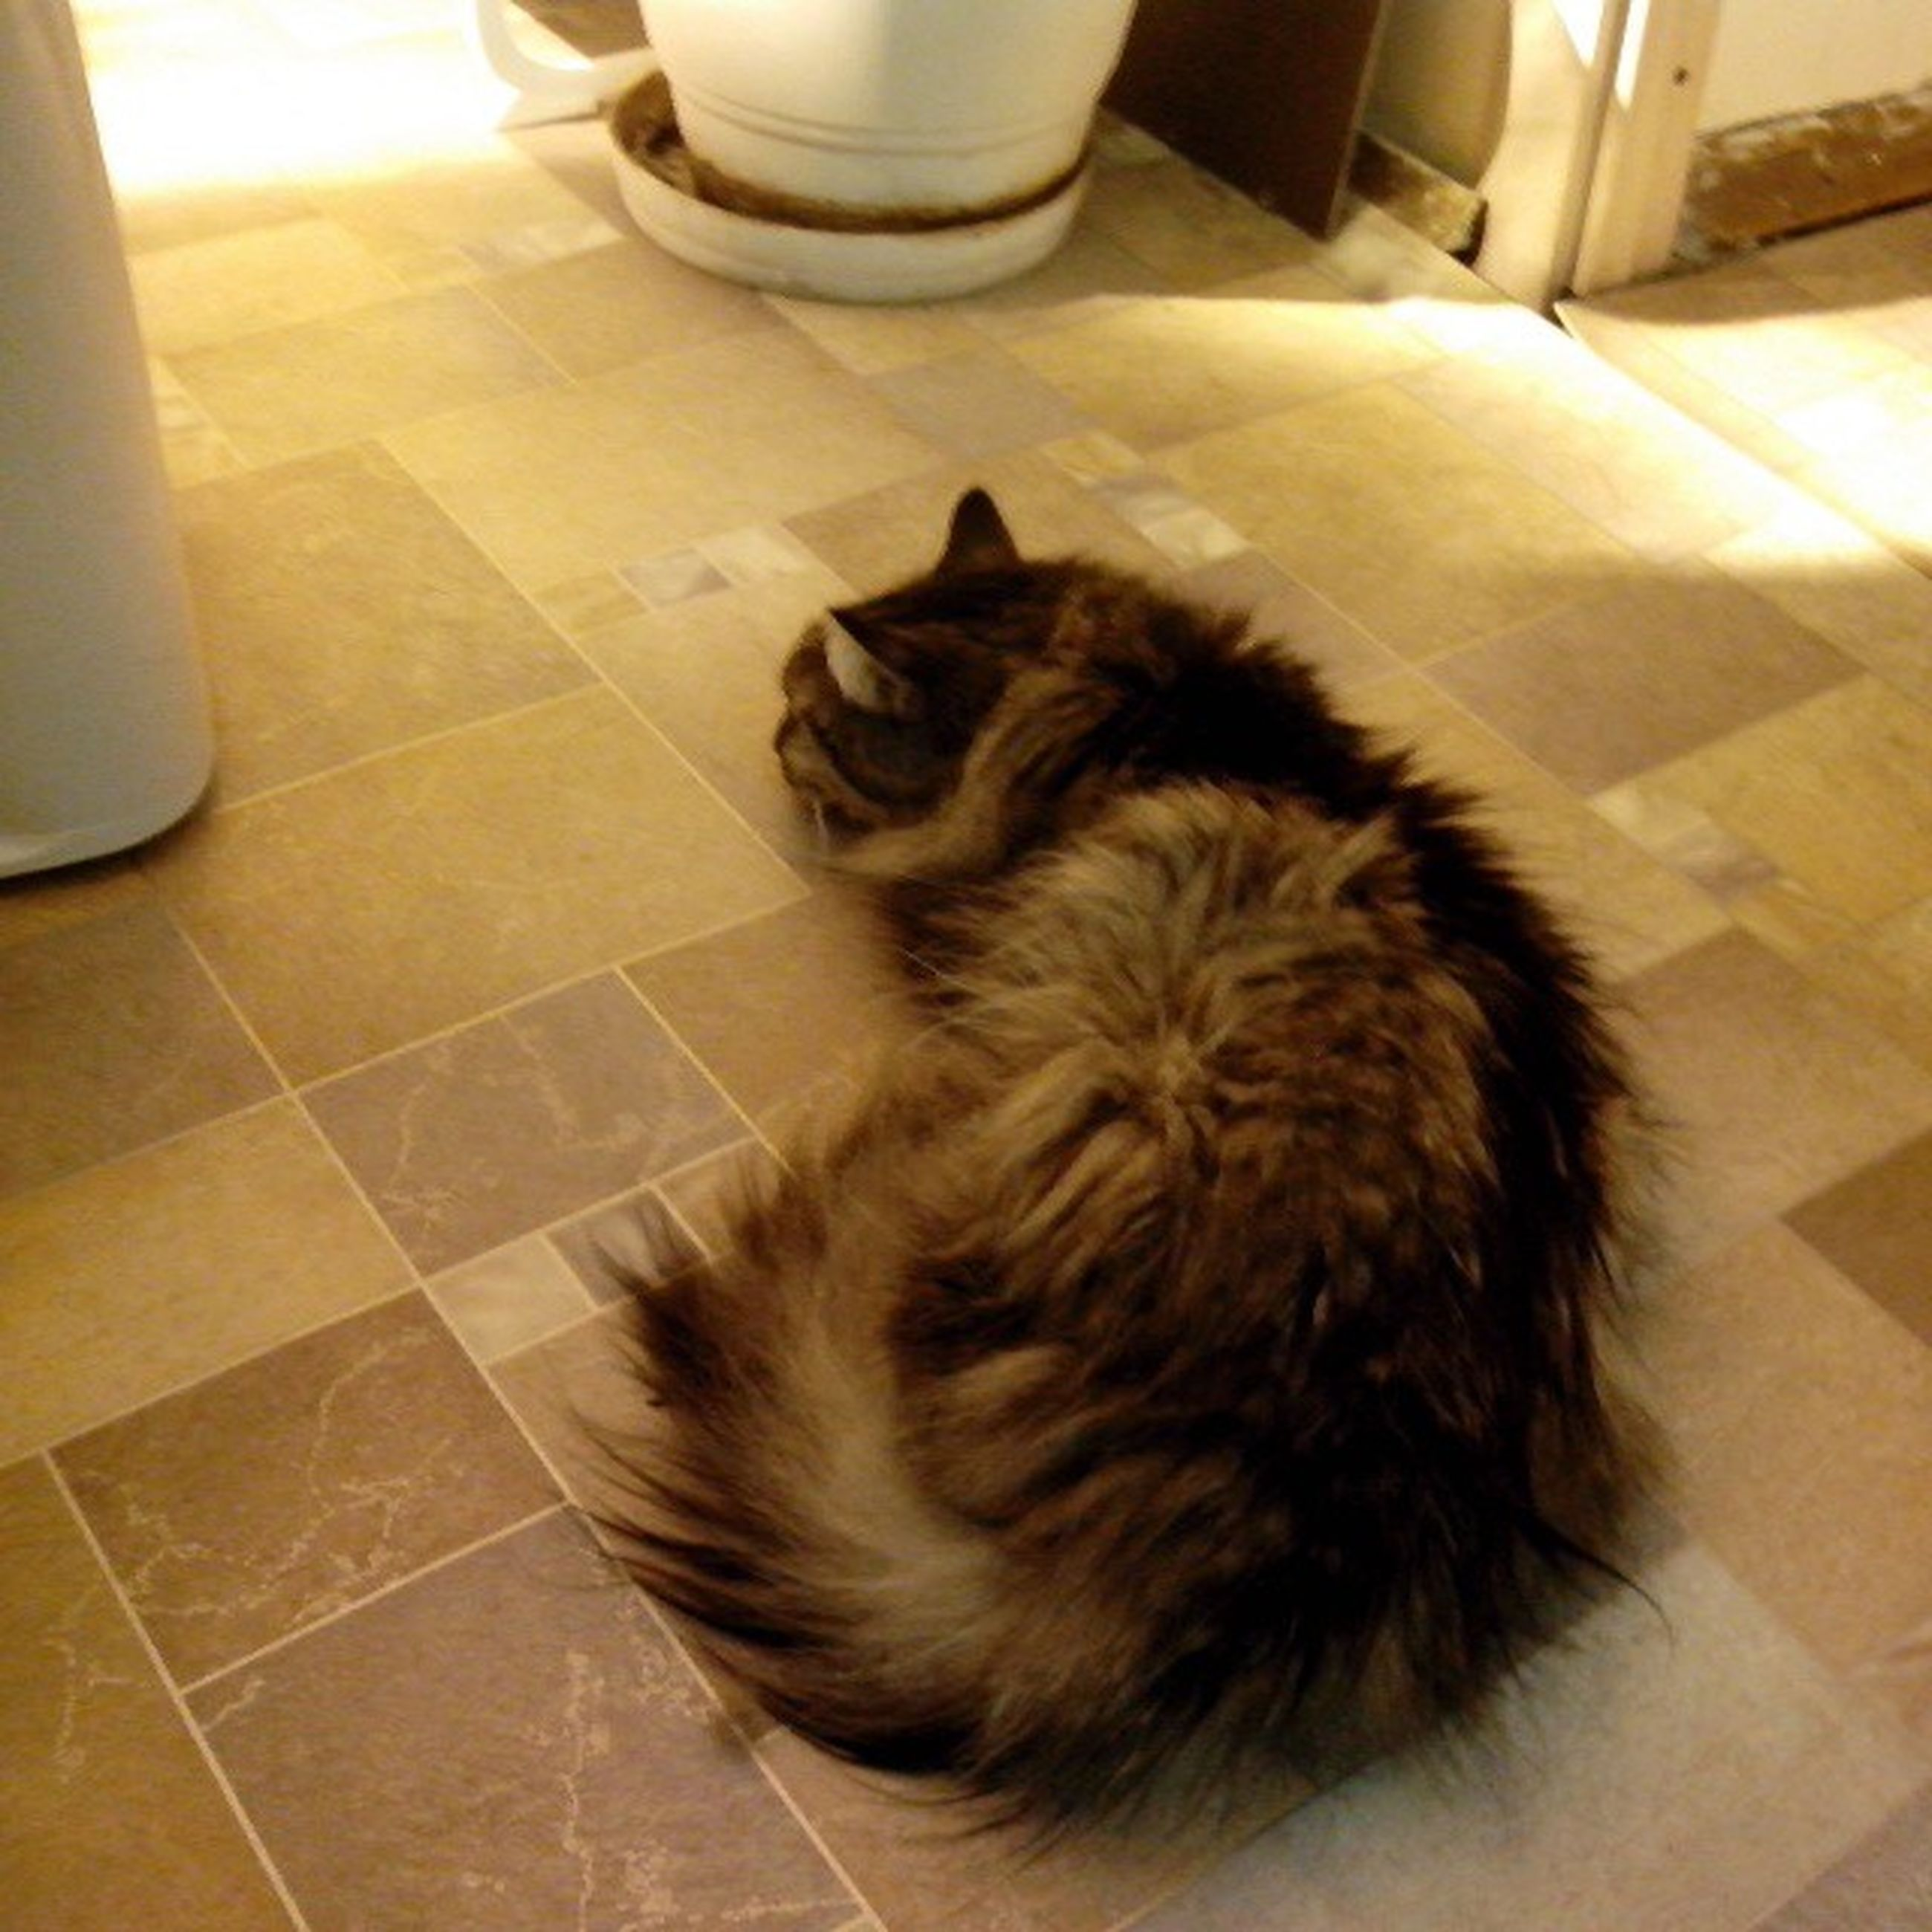 indoors, pets, domestic animals, animal themes, one animal, mammal, domestic cat, relaxation, cat, tiled floor, home interior, flooring, high angle view, resting, feline, lying down, sleeping, home, floor, sitting